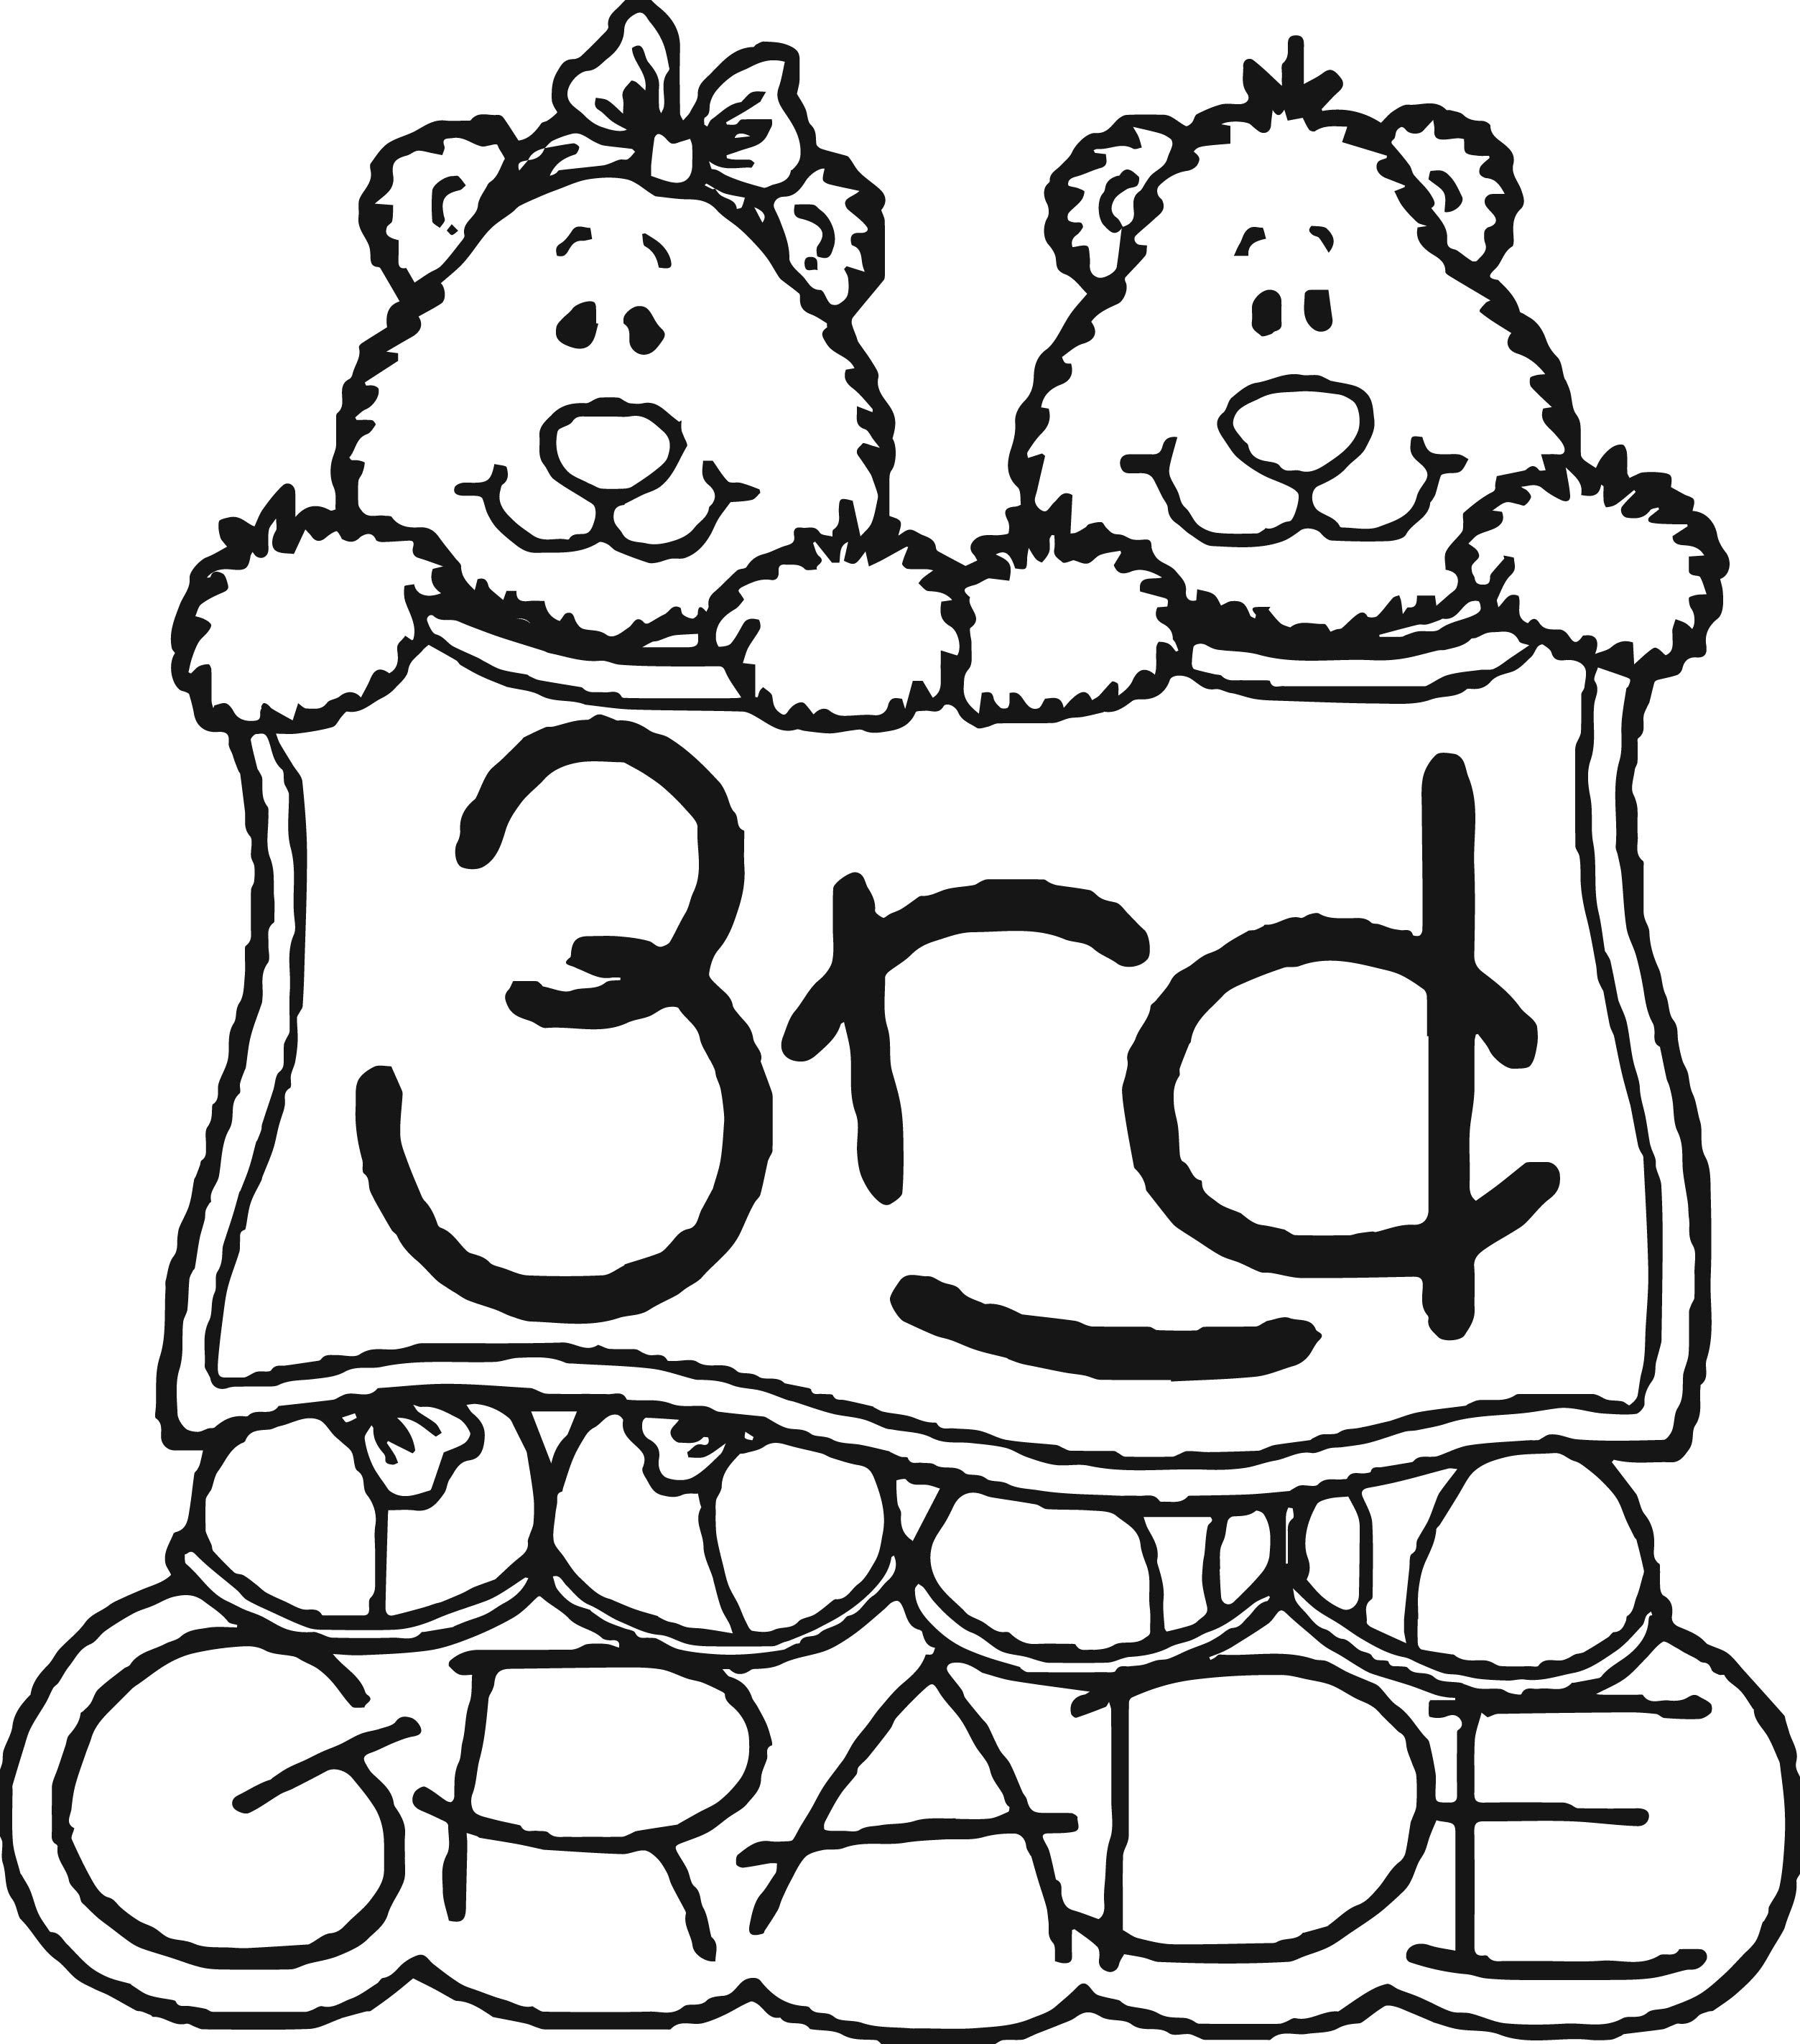 coloring sheets 3rd grade math coloring pages 4th grade free download on clipartmag sheets coloring 3rd grade